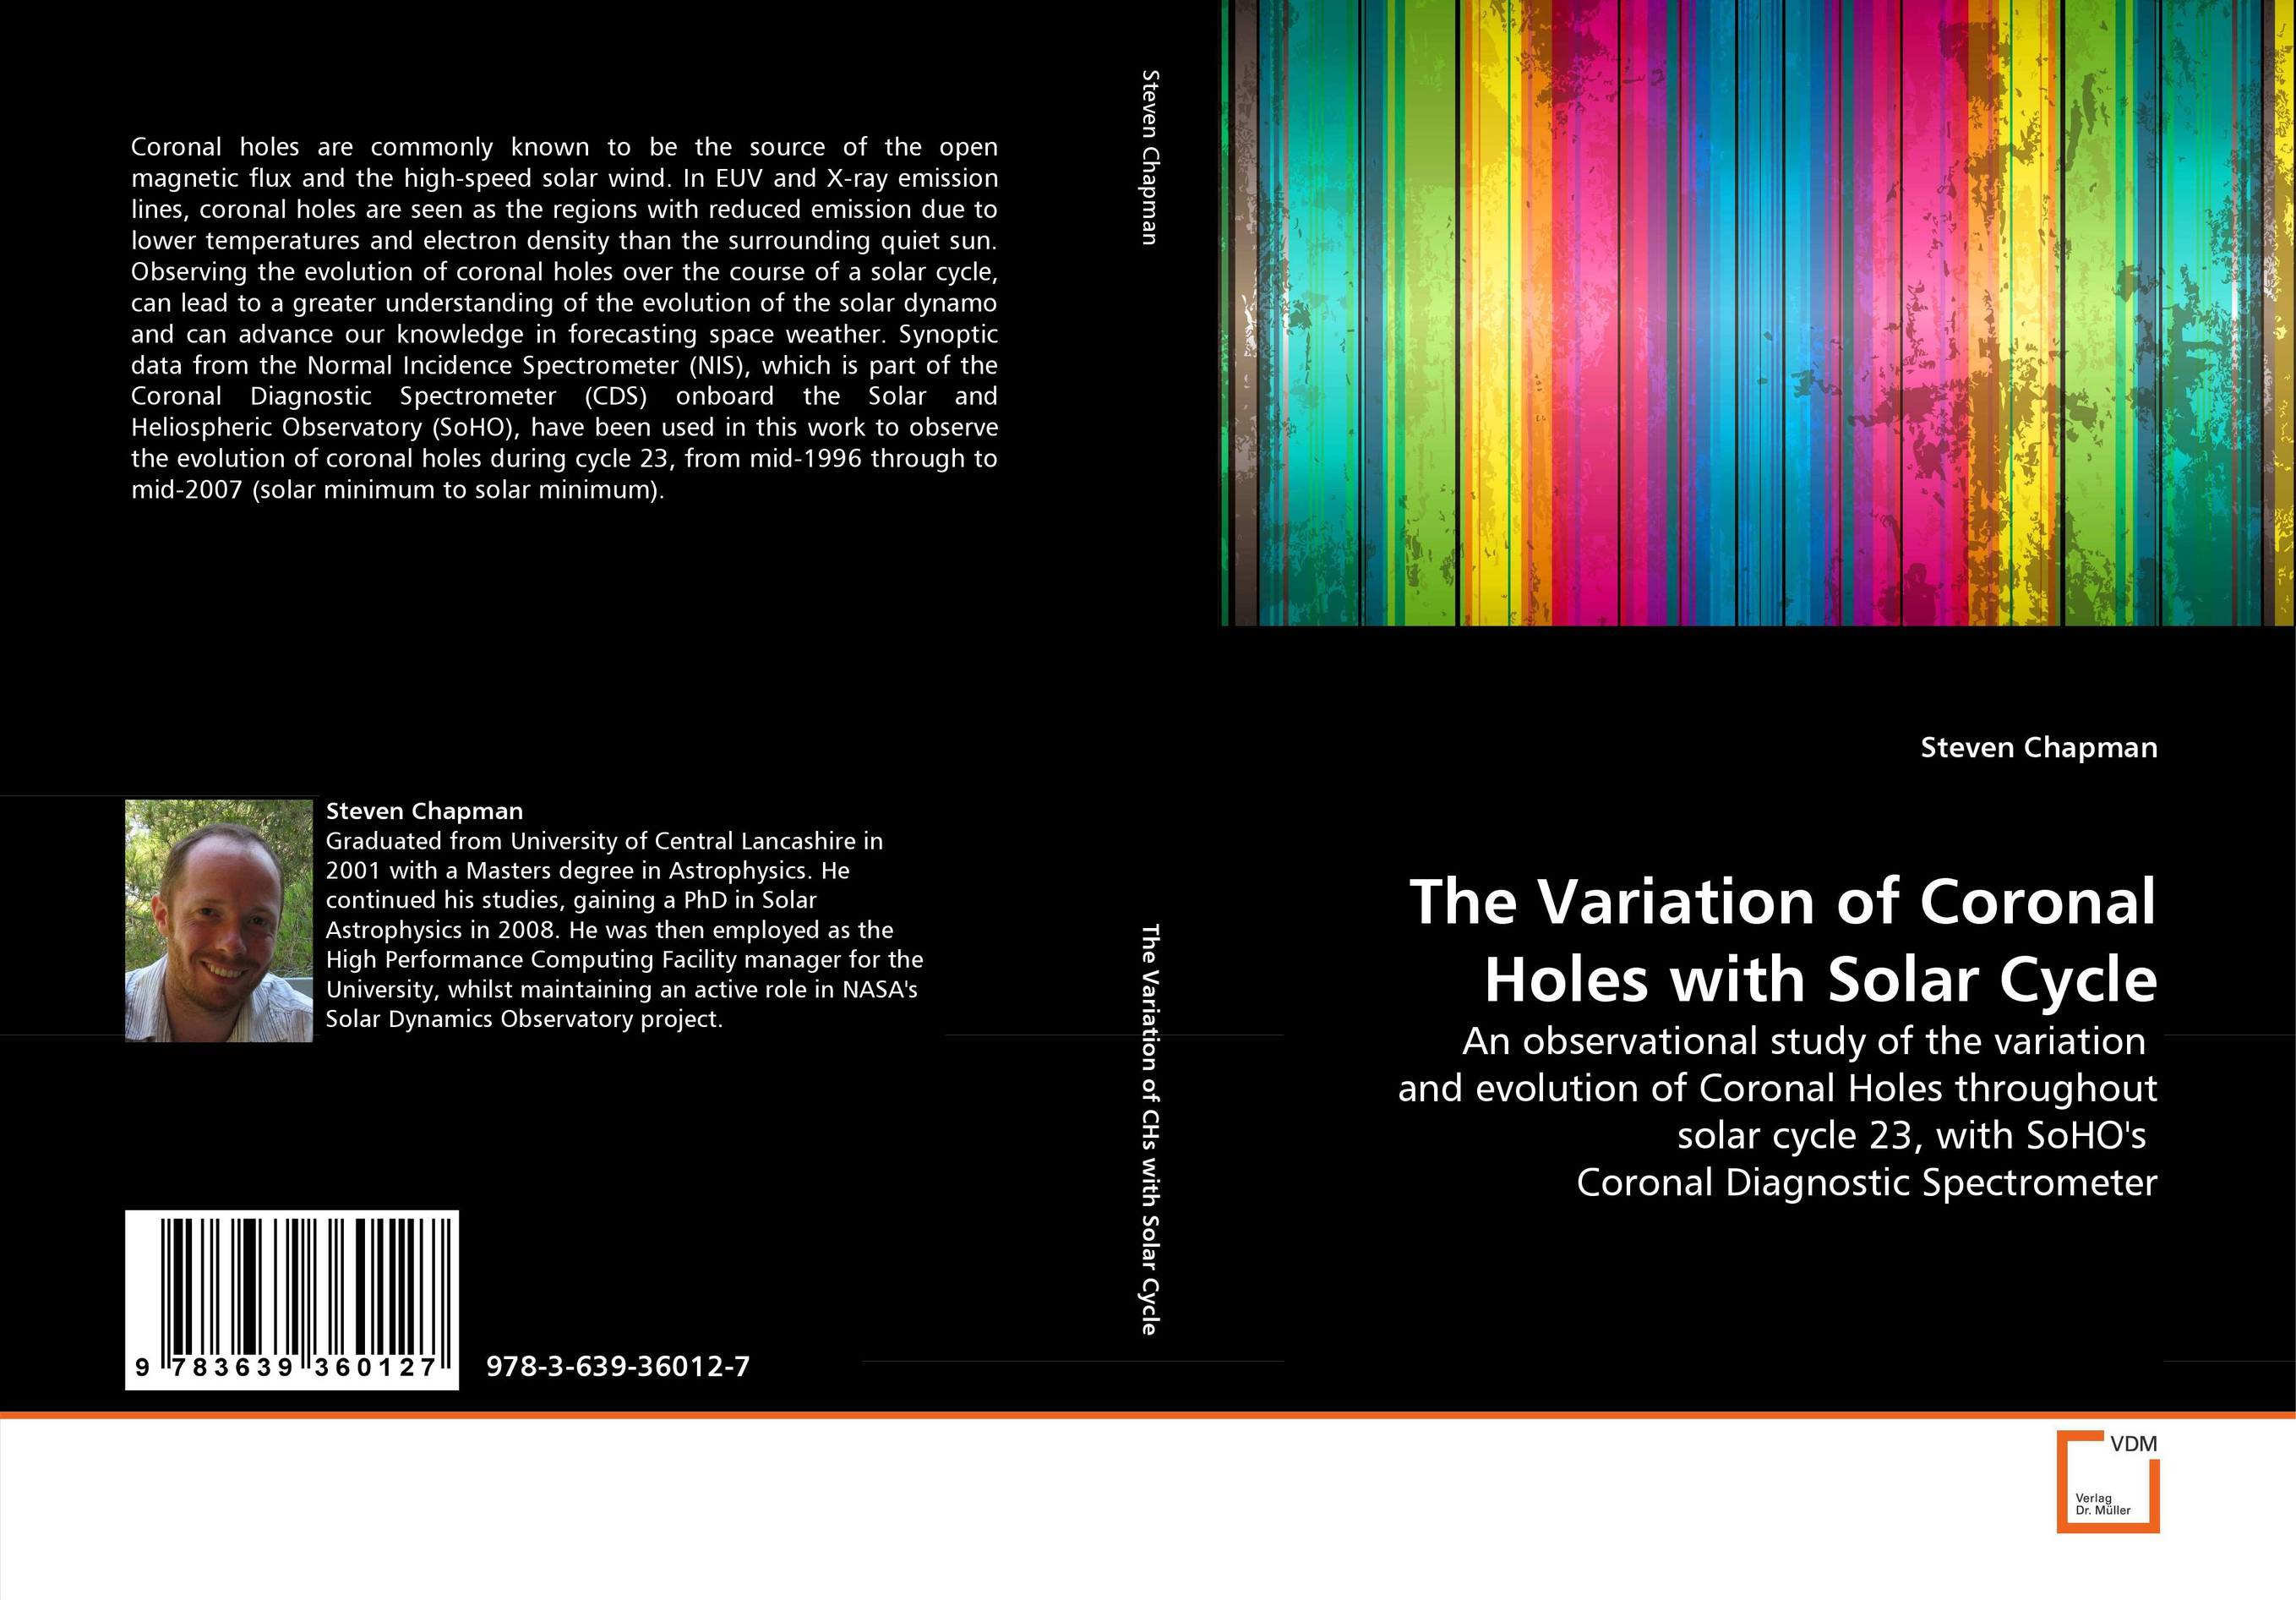 The Variation of Coronal Holes with Solar Cycle holes